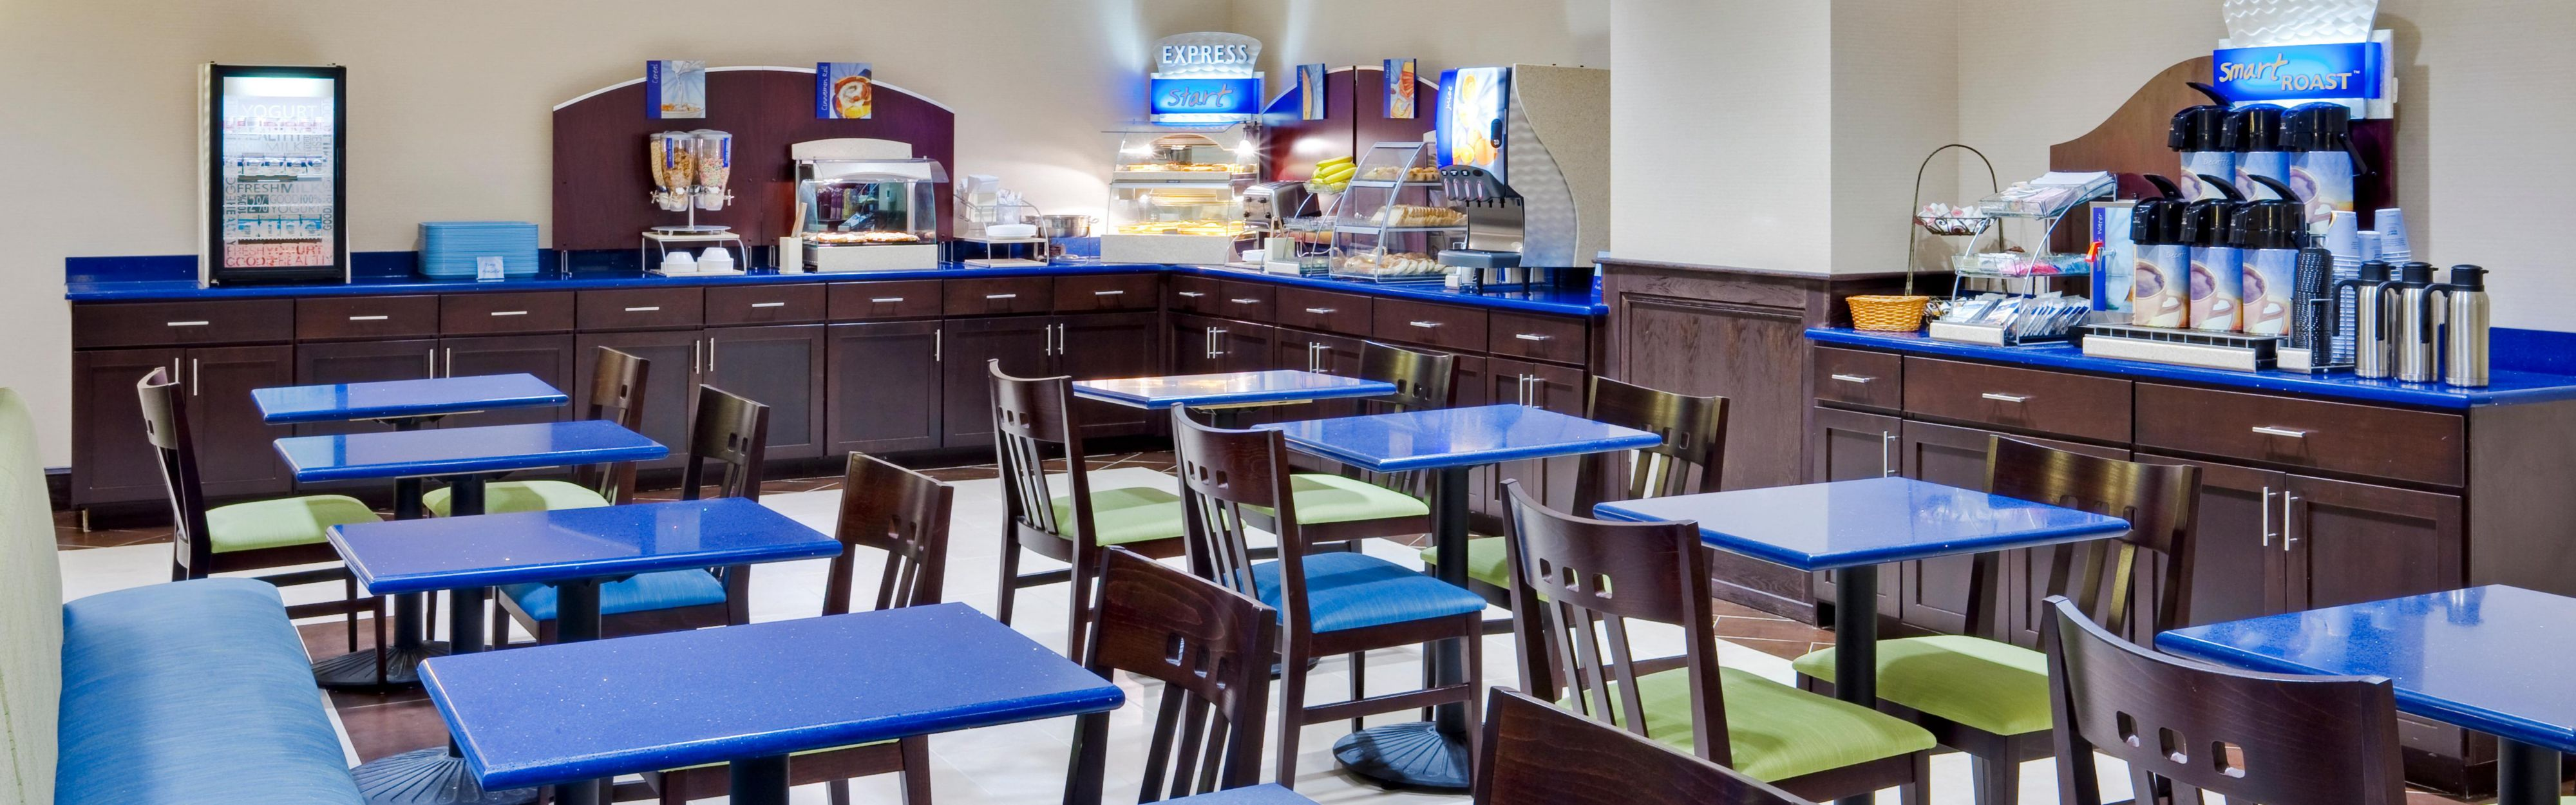 Holiday Inn Express & Suites Williamsport image 3